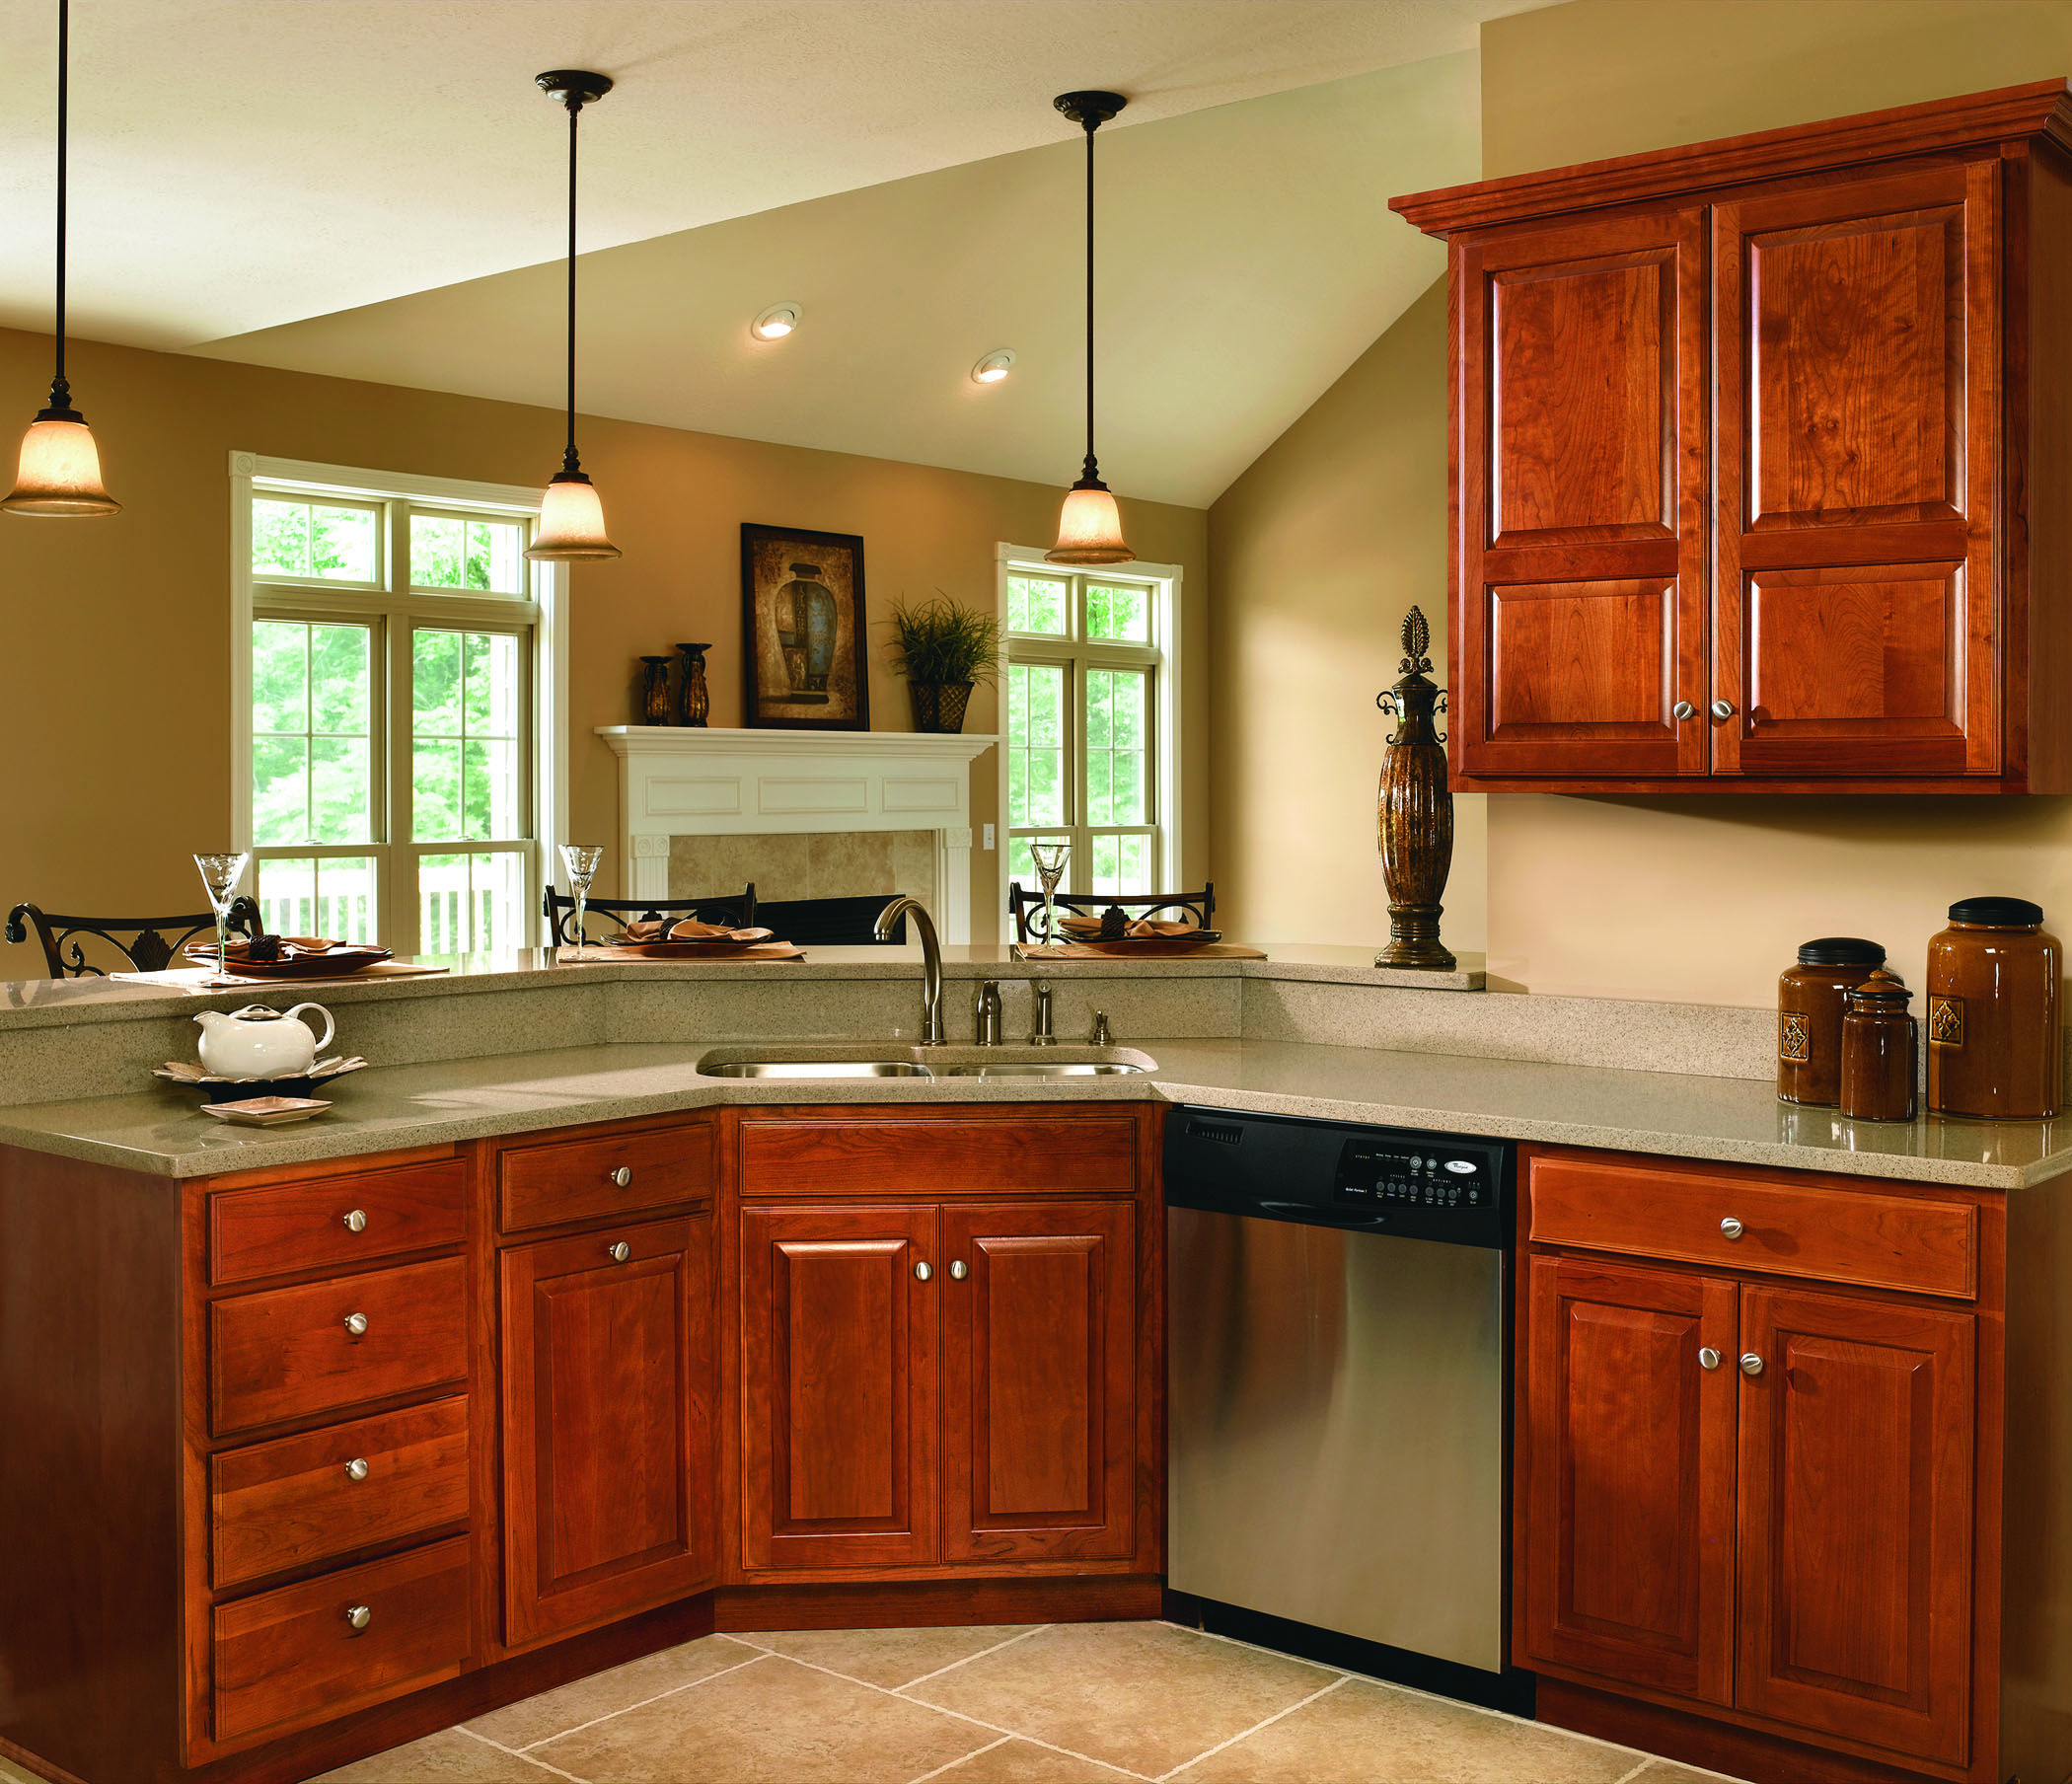 haas cabinet co federal square door style partial overlay wood haas cabinet co federal square door style partial overlay wood species cherry finish